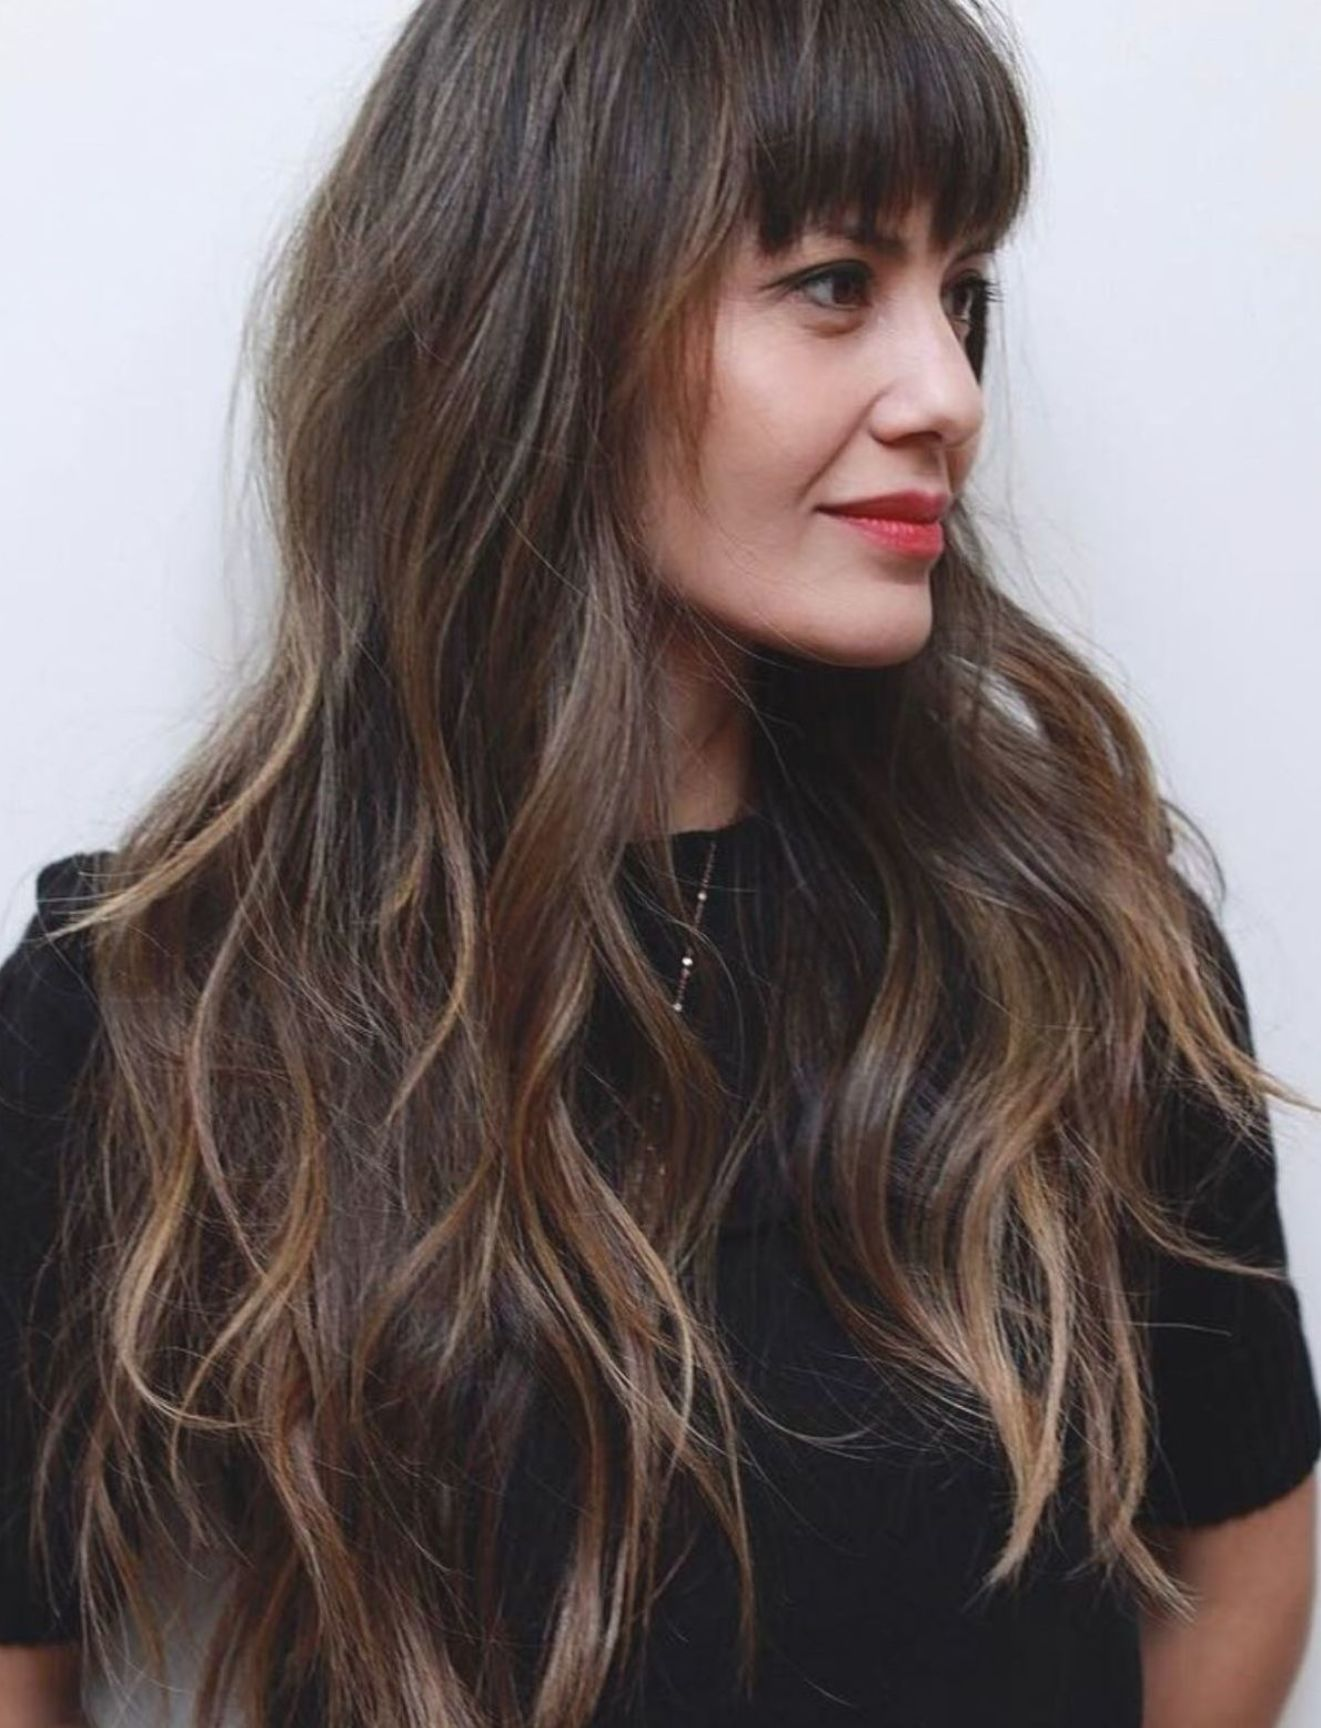 Pin By Abbott On 2021 Haircut Curly Hair Styles Naturally Long Layered Haircuts Layered Haircuts With Bangs